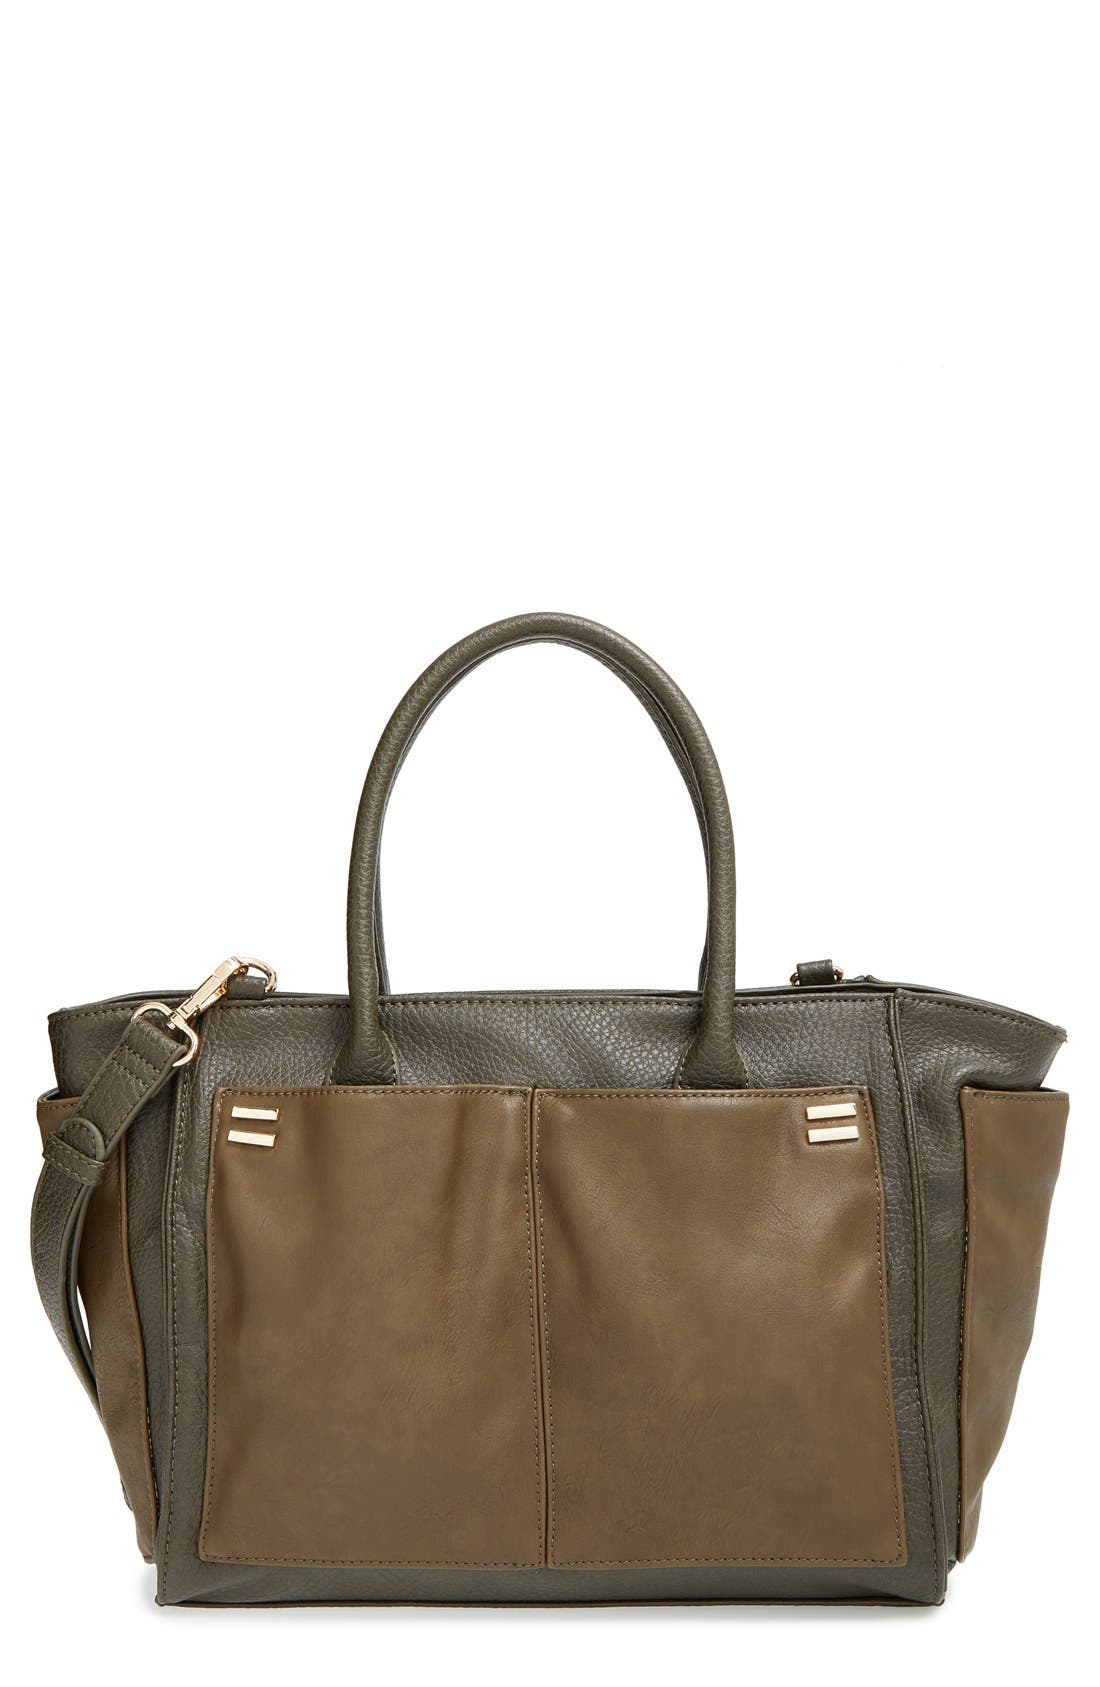 Alternate Image 1 Selected - Sole Society 'Medium Rebekah' Faux Leather Tote